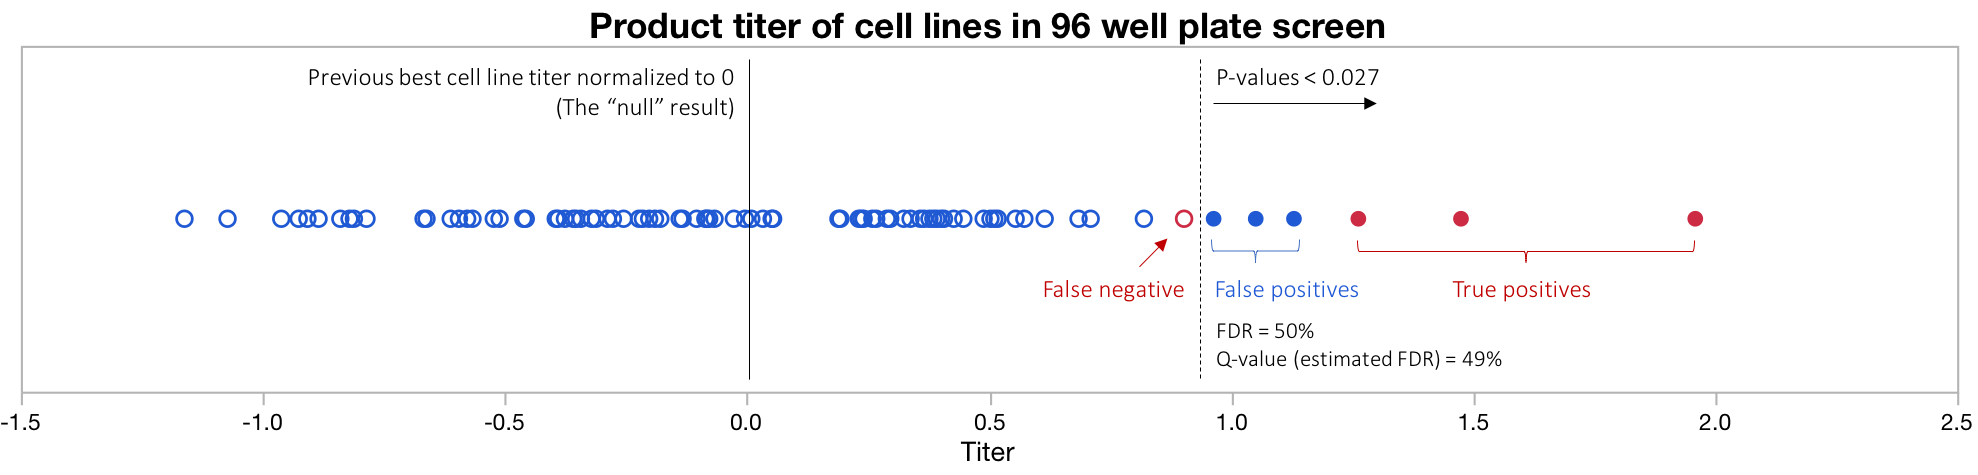 Figure 2: Cell line selection based on FDR. The data is the same as Figure 1. But now the actual cell line characteristics are revealed. Red circles represent cell lines that are truly improved. At the P<0.027, 50% of the accepted cell lines are, false positives. Thus the actual FDR is 50%. The Q-value of 49% is calculated only from P-values using no knowledge of actual true or false positives. It suggests that 49% of the accepted cell lines are false positives. Thus Q-values provide an excellent estimate of the FDR. Data for this plot comes from this spreadsheet .